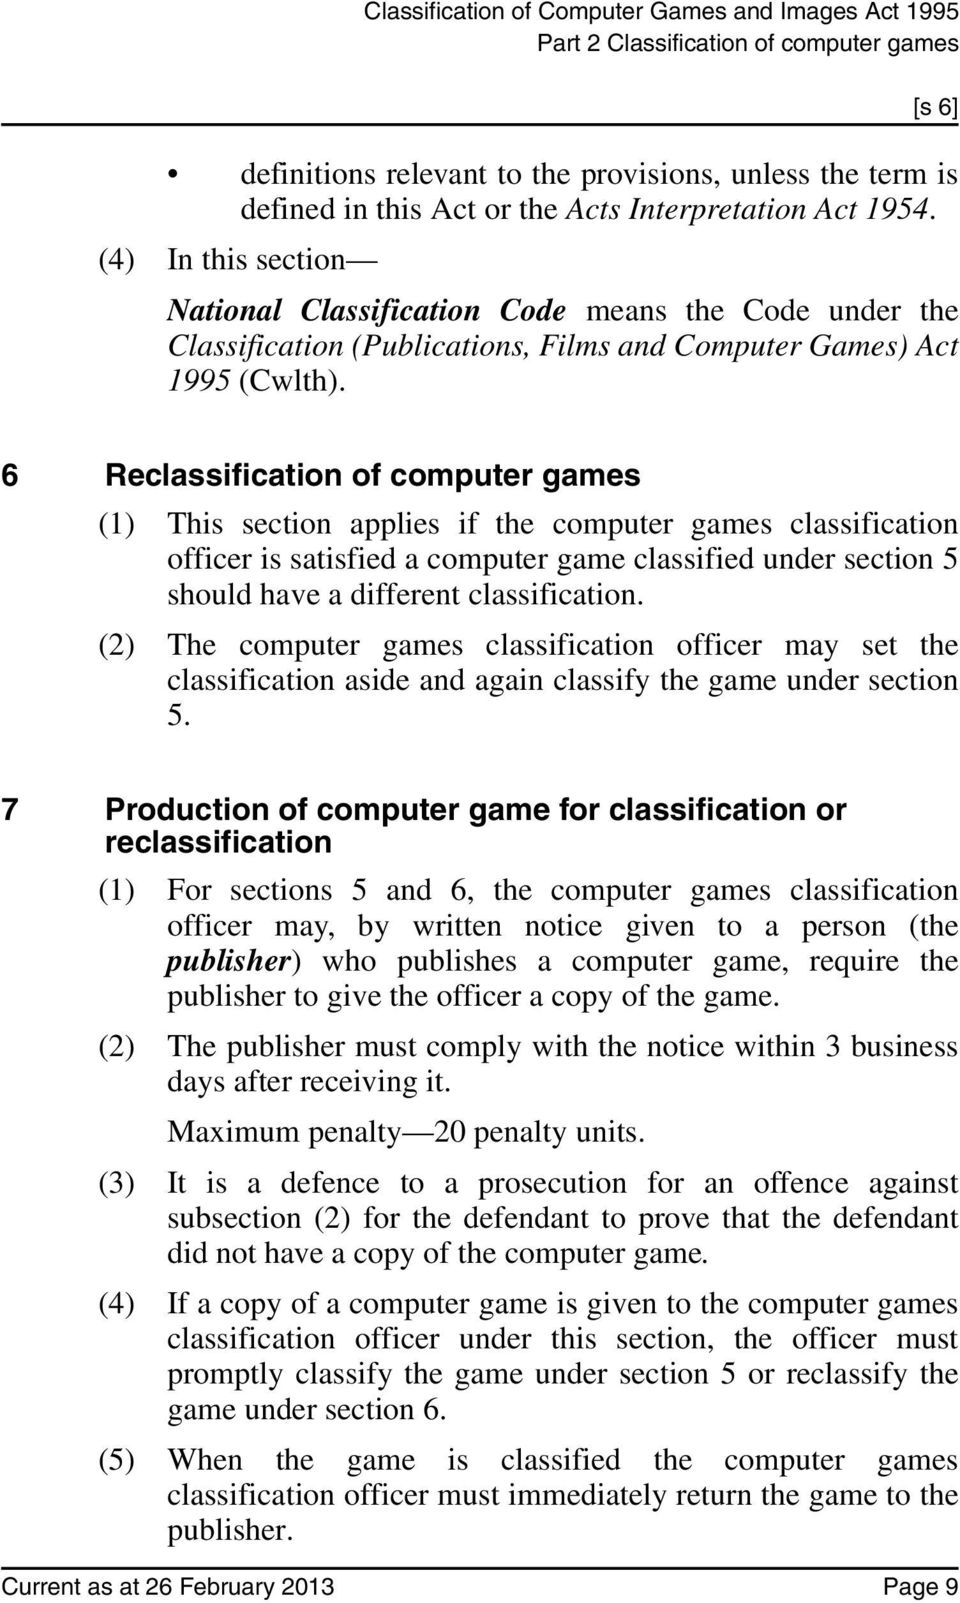 6 Reclassification of computer games (1) This section applies if the computer games classification officer is satisfied a computer game classified under section 5 should have a different